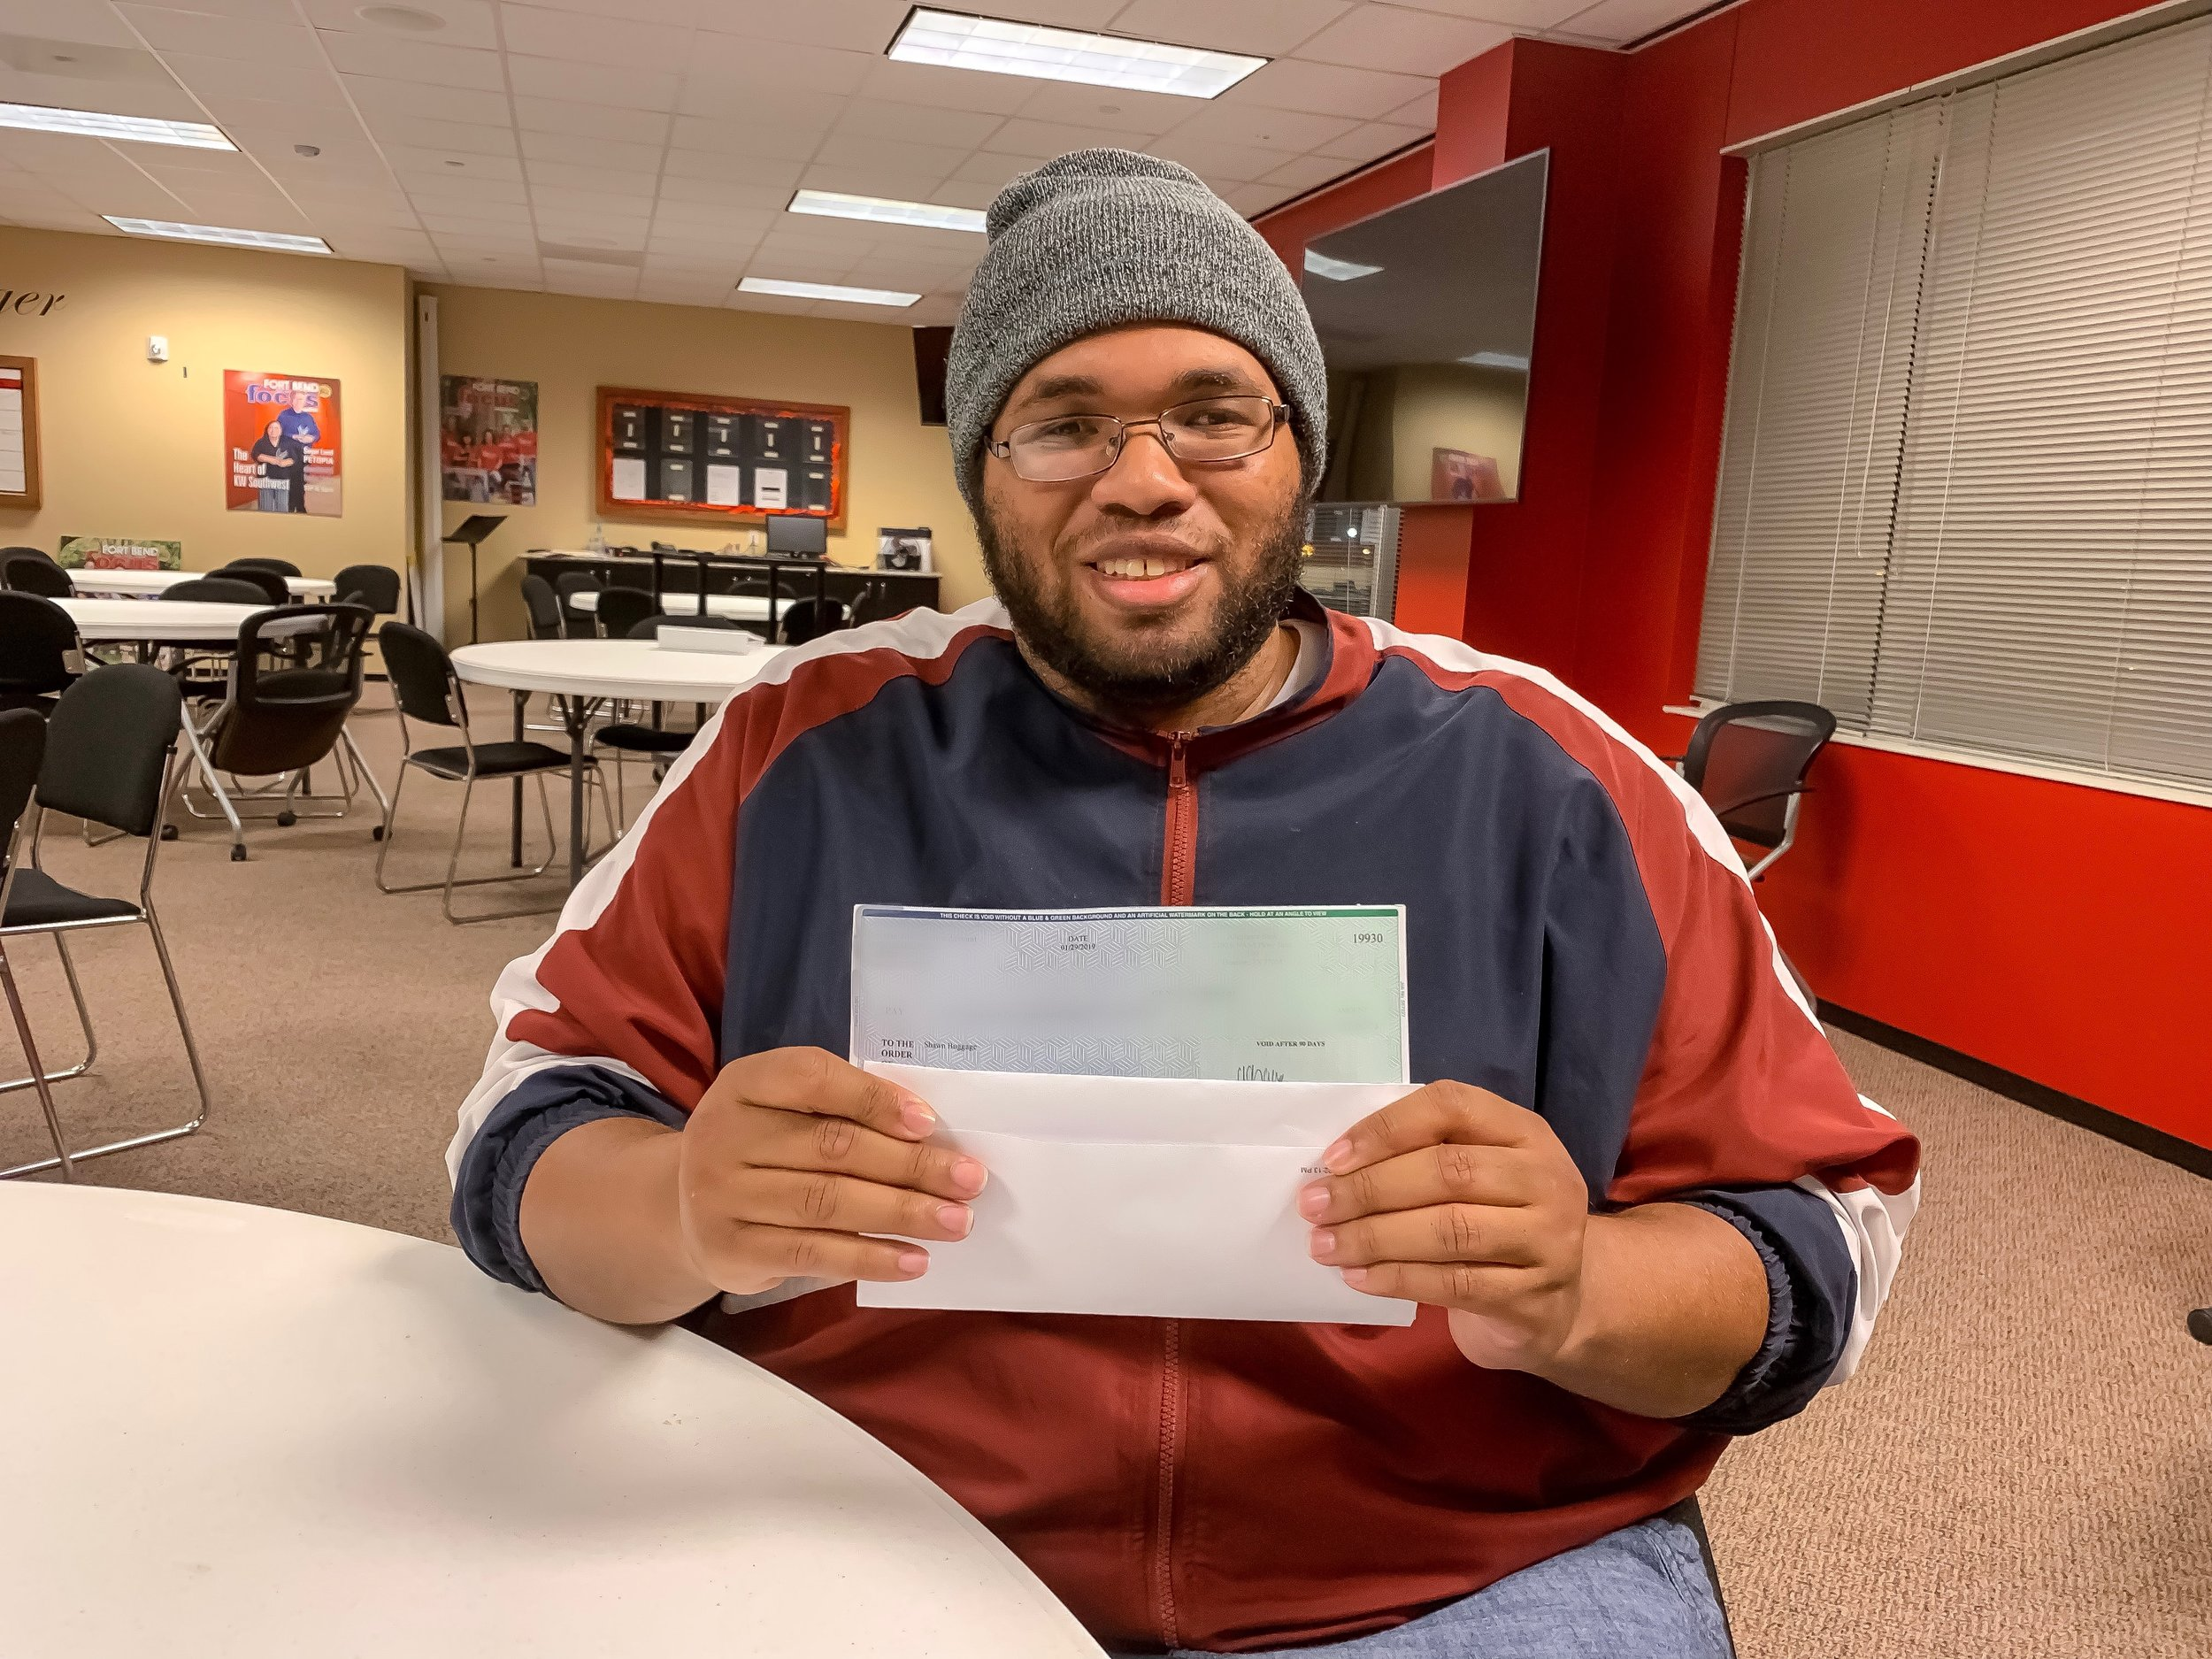 NEW FLIP MOGUL STUDENT CLOSES FIRST DEAL - Shawn is started off his 2019 off right by accomplishing one of his biggest goals. With the help of Flip Mogul he has closed his very first real estate deal! After years of being involved in the real estate industry, Shawn shares his story and gives some great advice to others who are looking to get started!